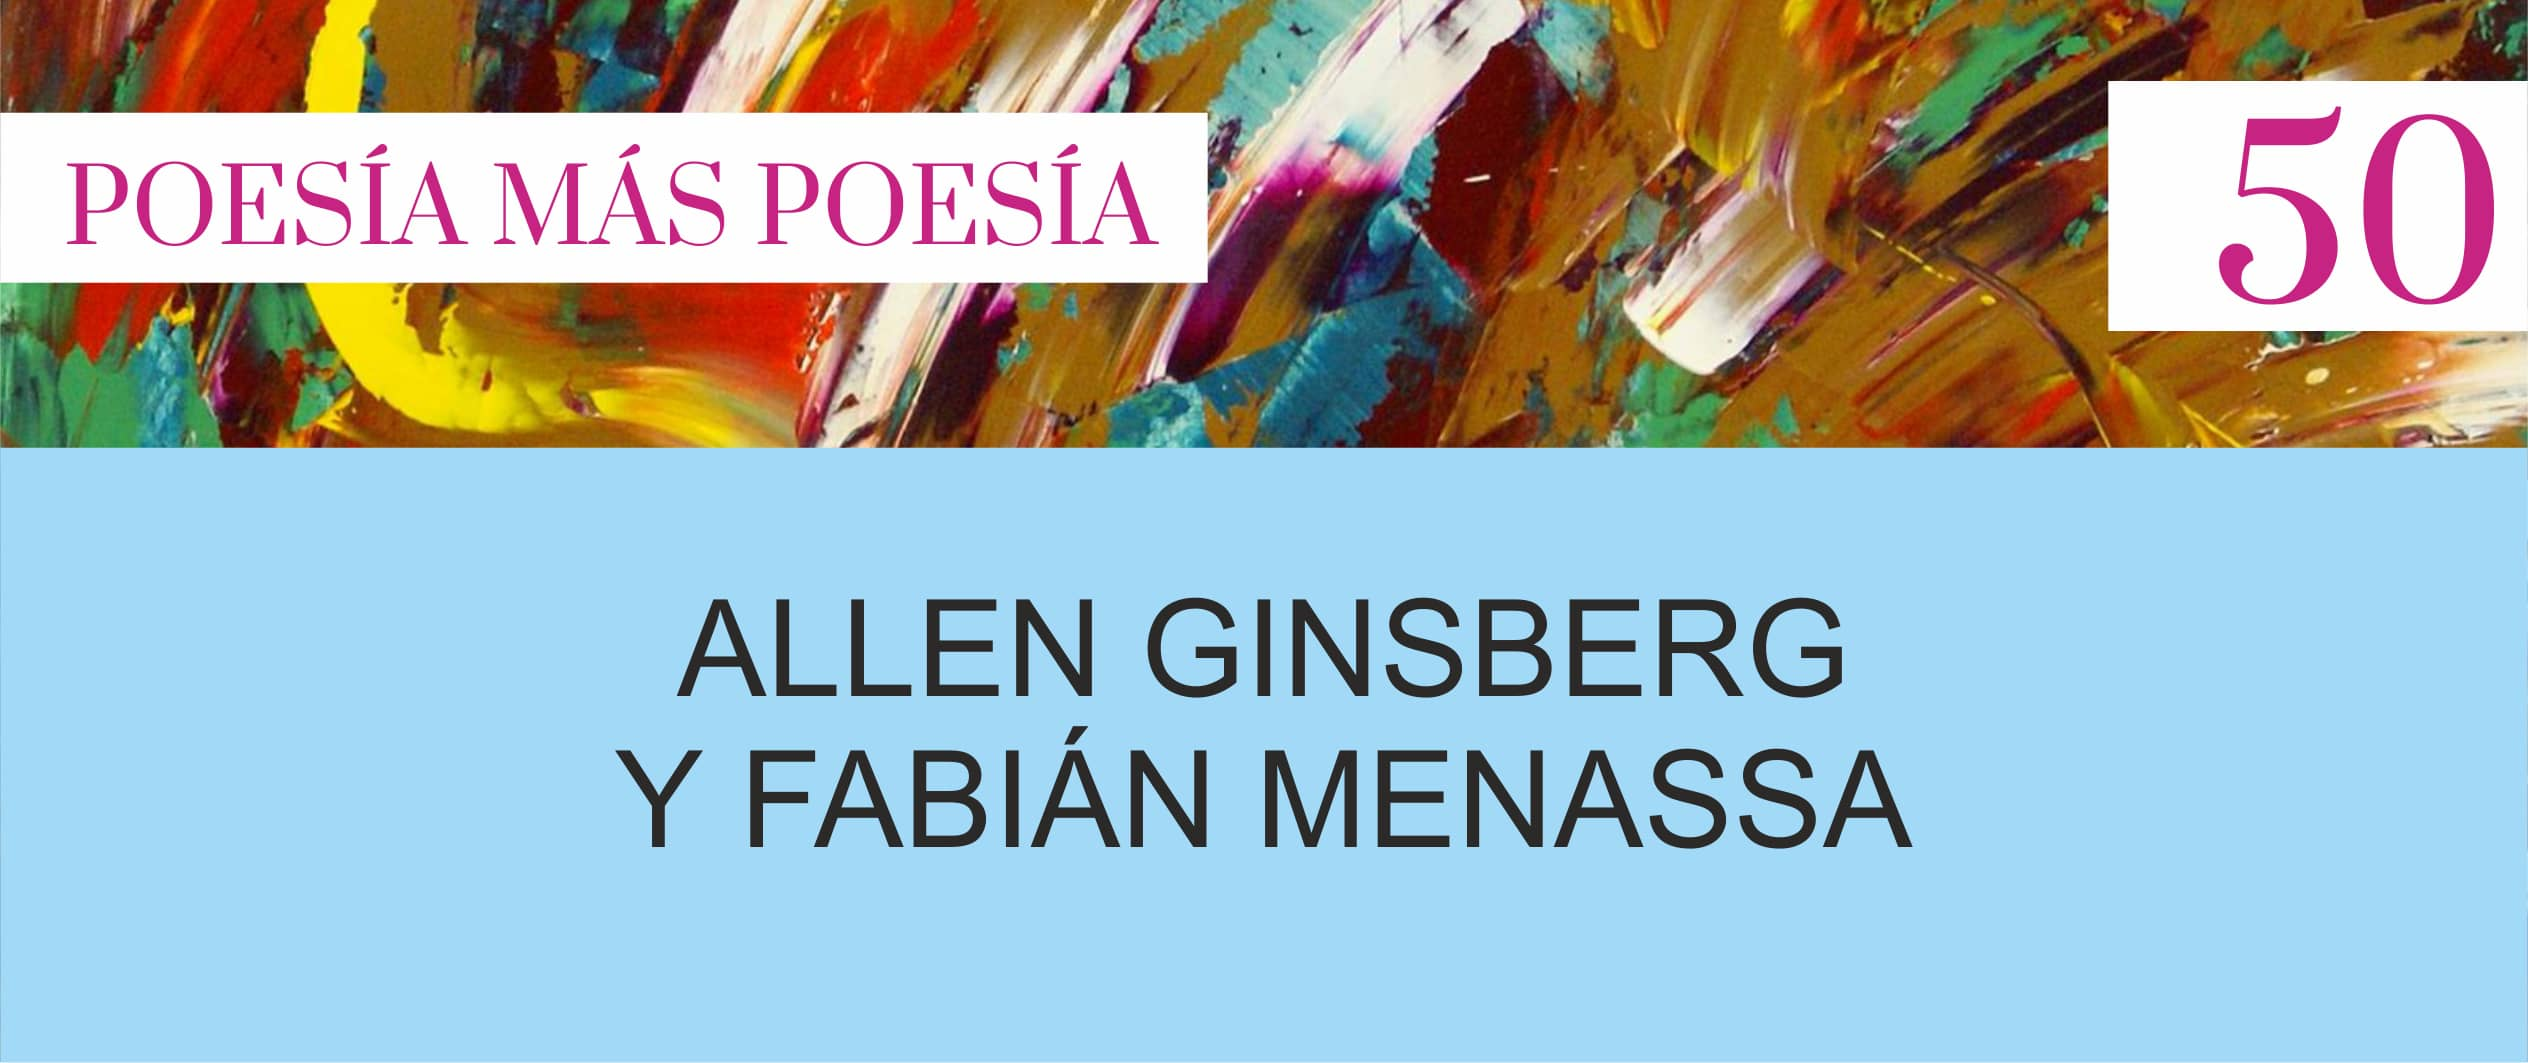 gins - Poesia Online